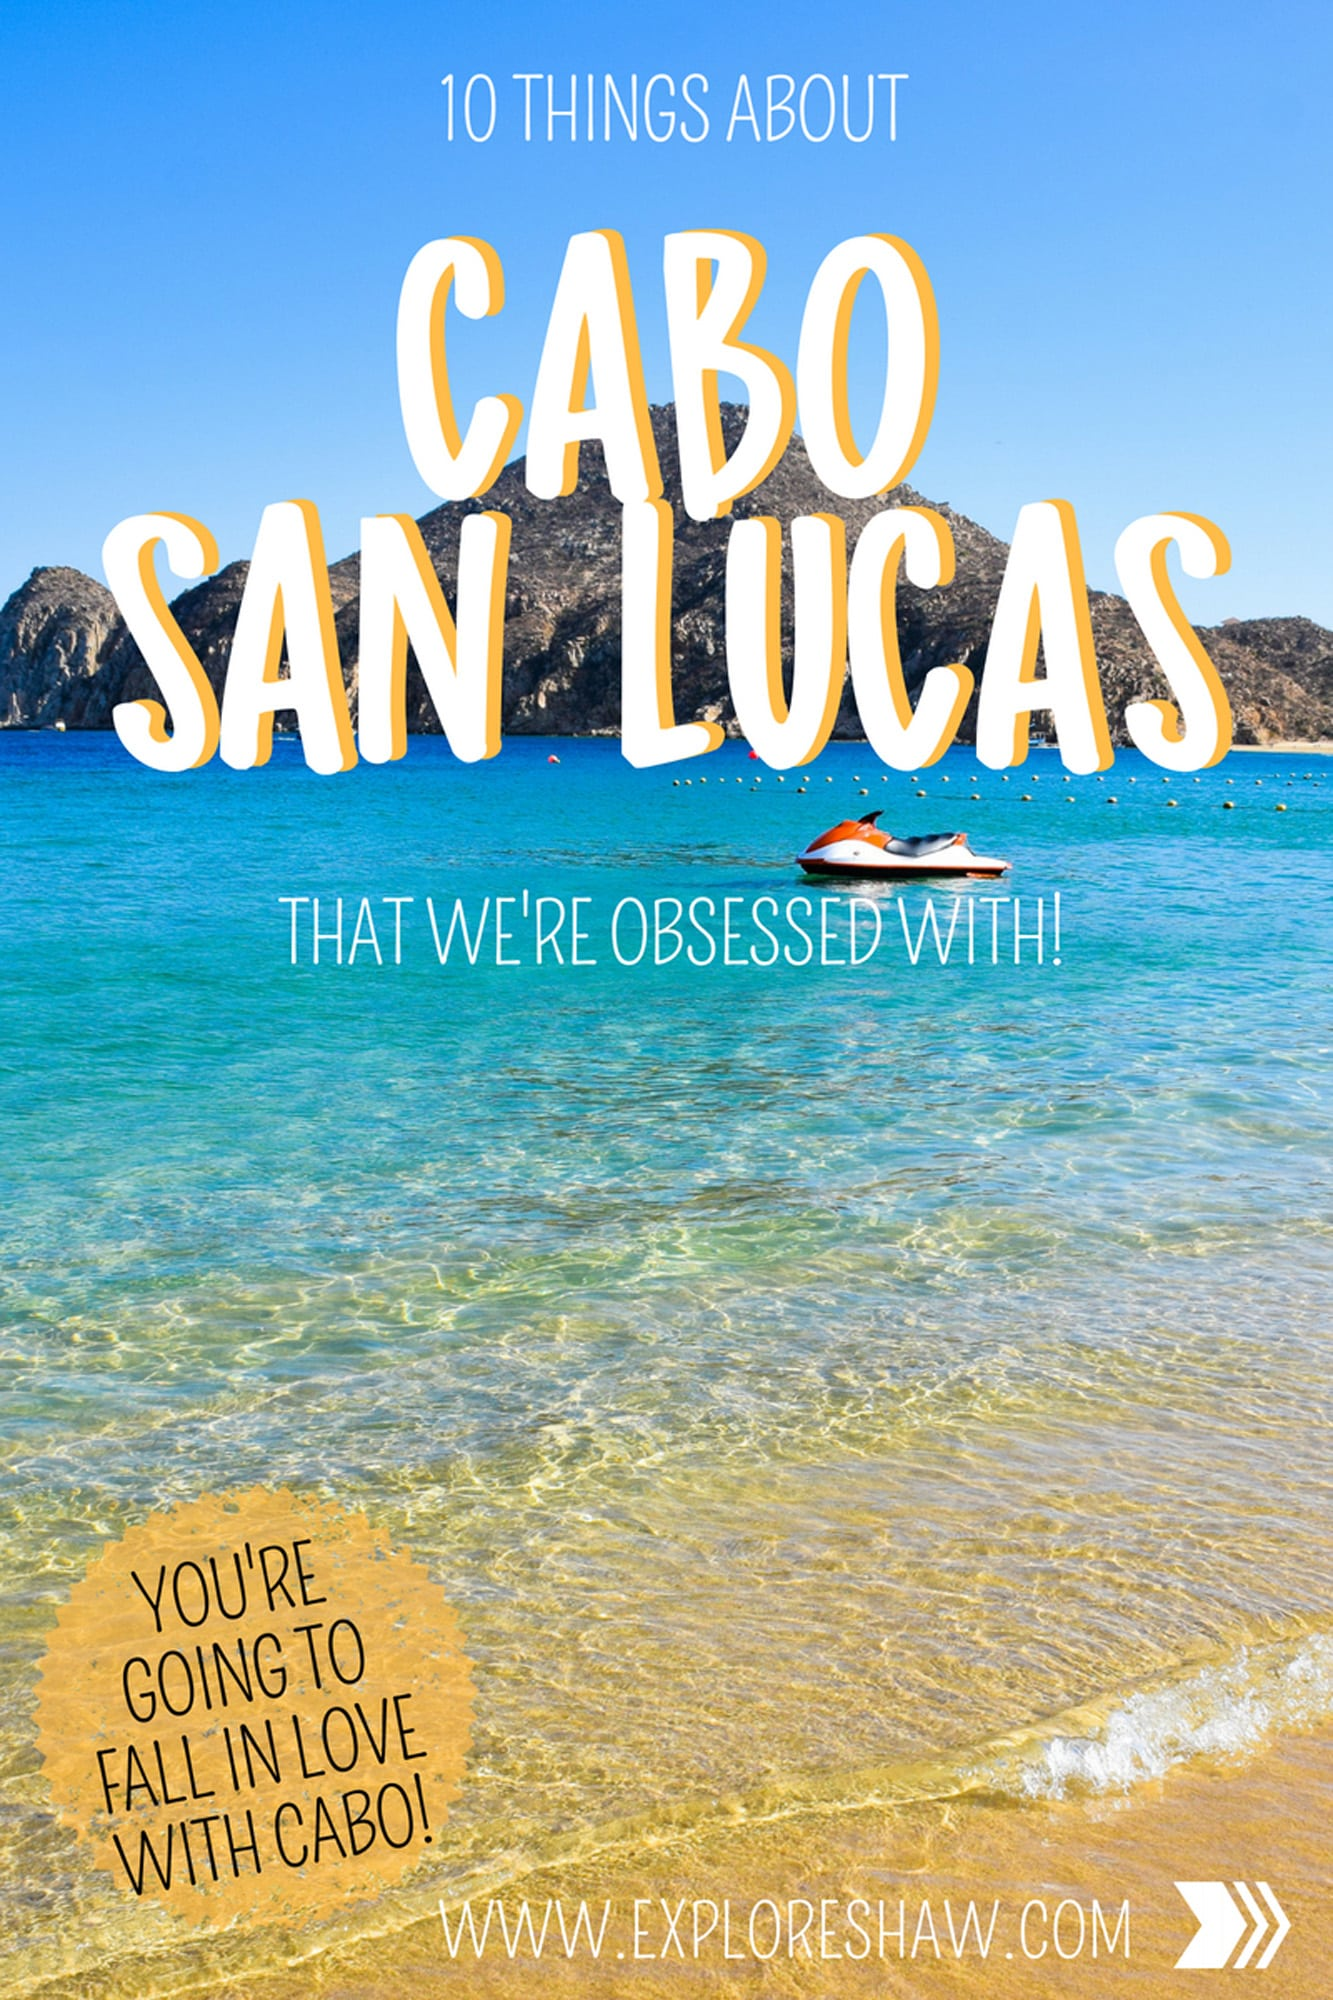 10 THINGS ABOUT CABO SAN LUCAS THAT WE'RE OBSESSED WITH